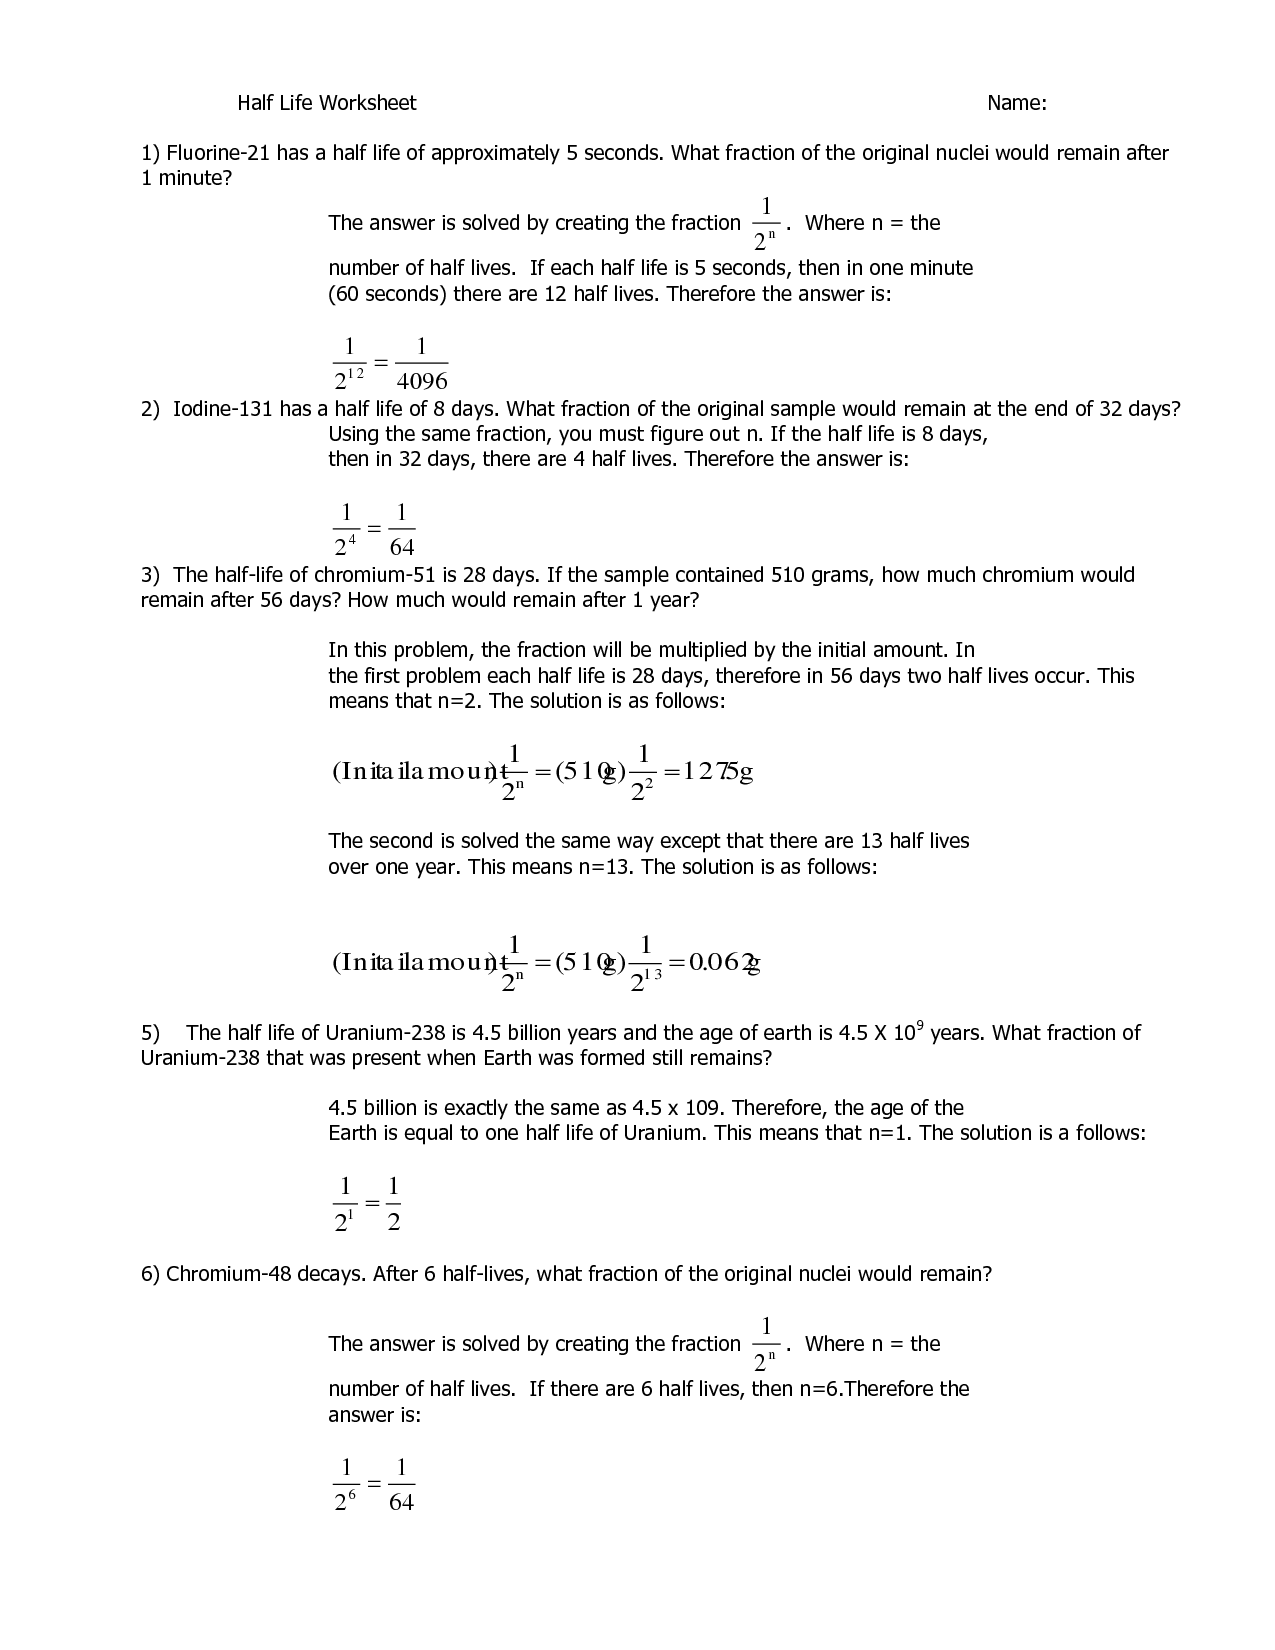 Half Life Worksheet Chapter 25 Nuclear Changes Answers ...